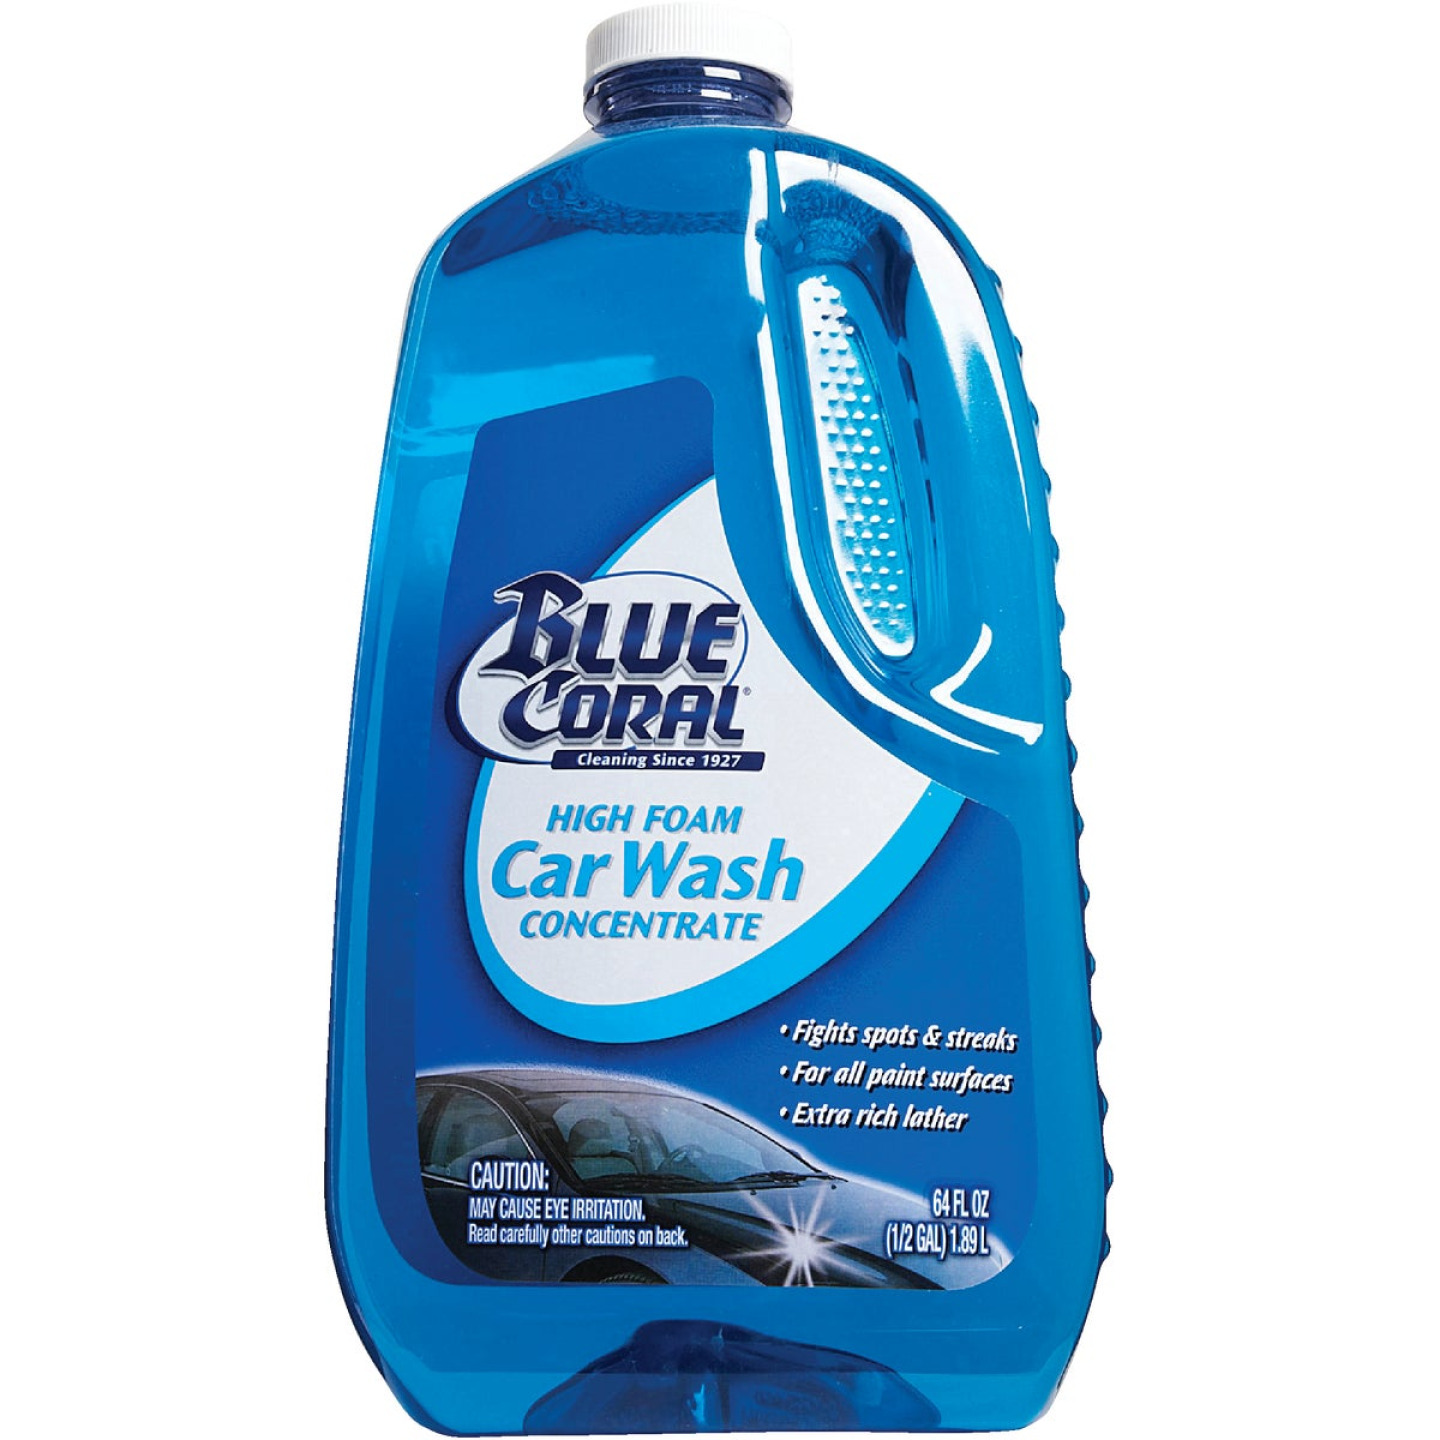 Blue Coral 64 Oz. Liquid High Foam Concentrate Car Wash Image 4